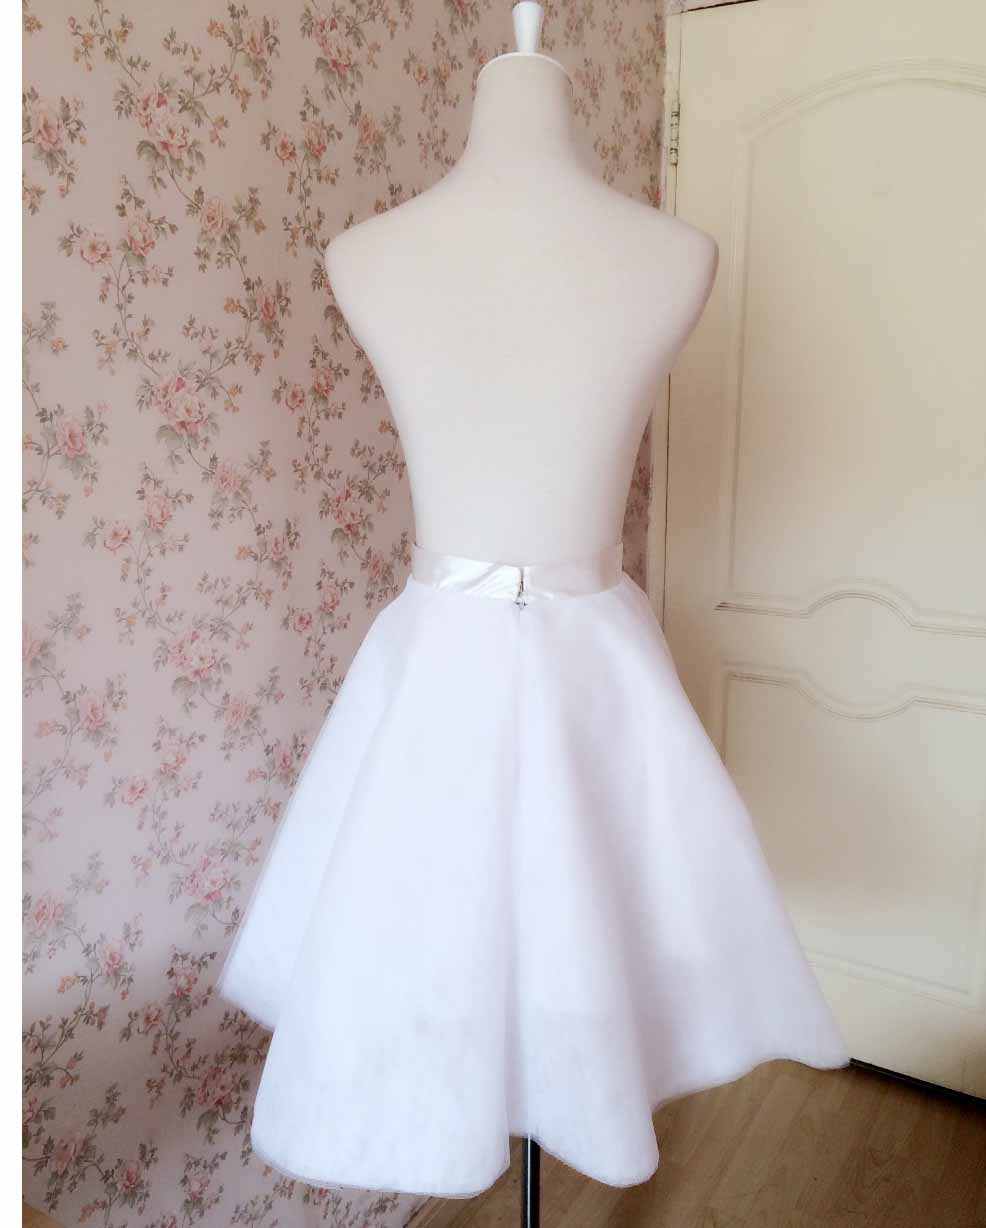 NUDE Knee Length High Waist A-line Tulle CIRCLE SKIRT Lady Nude Bridesmaid Skirt